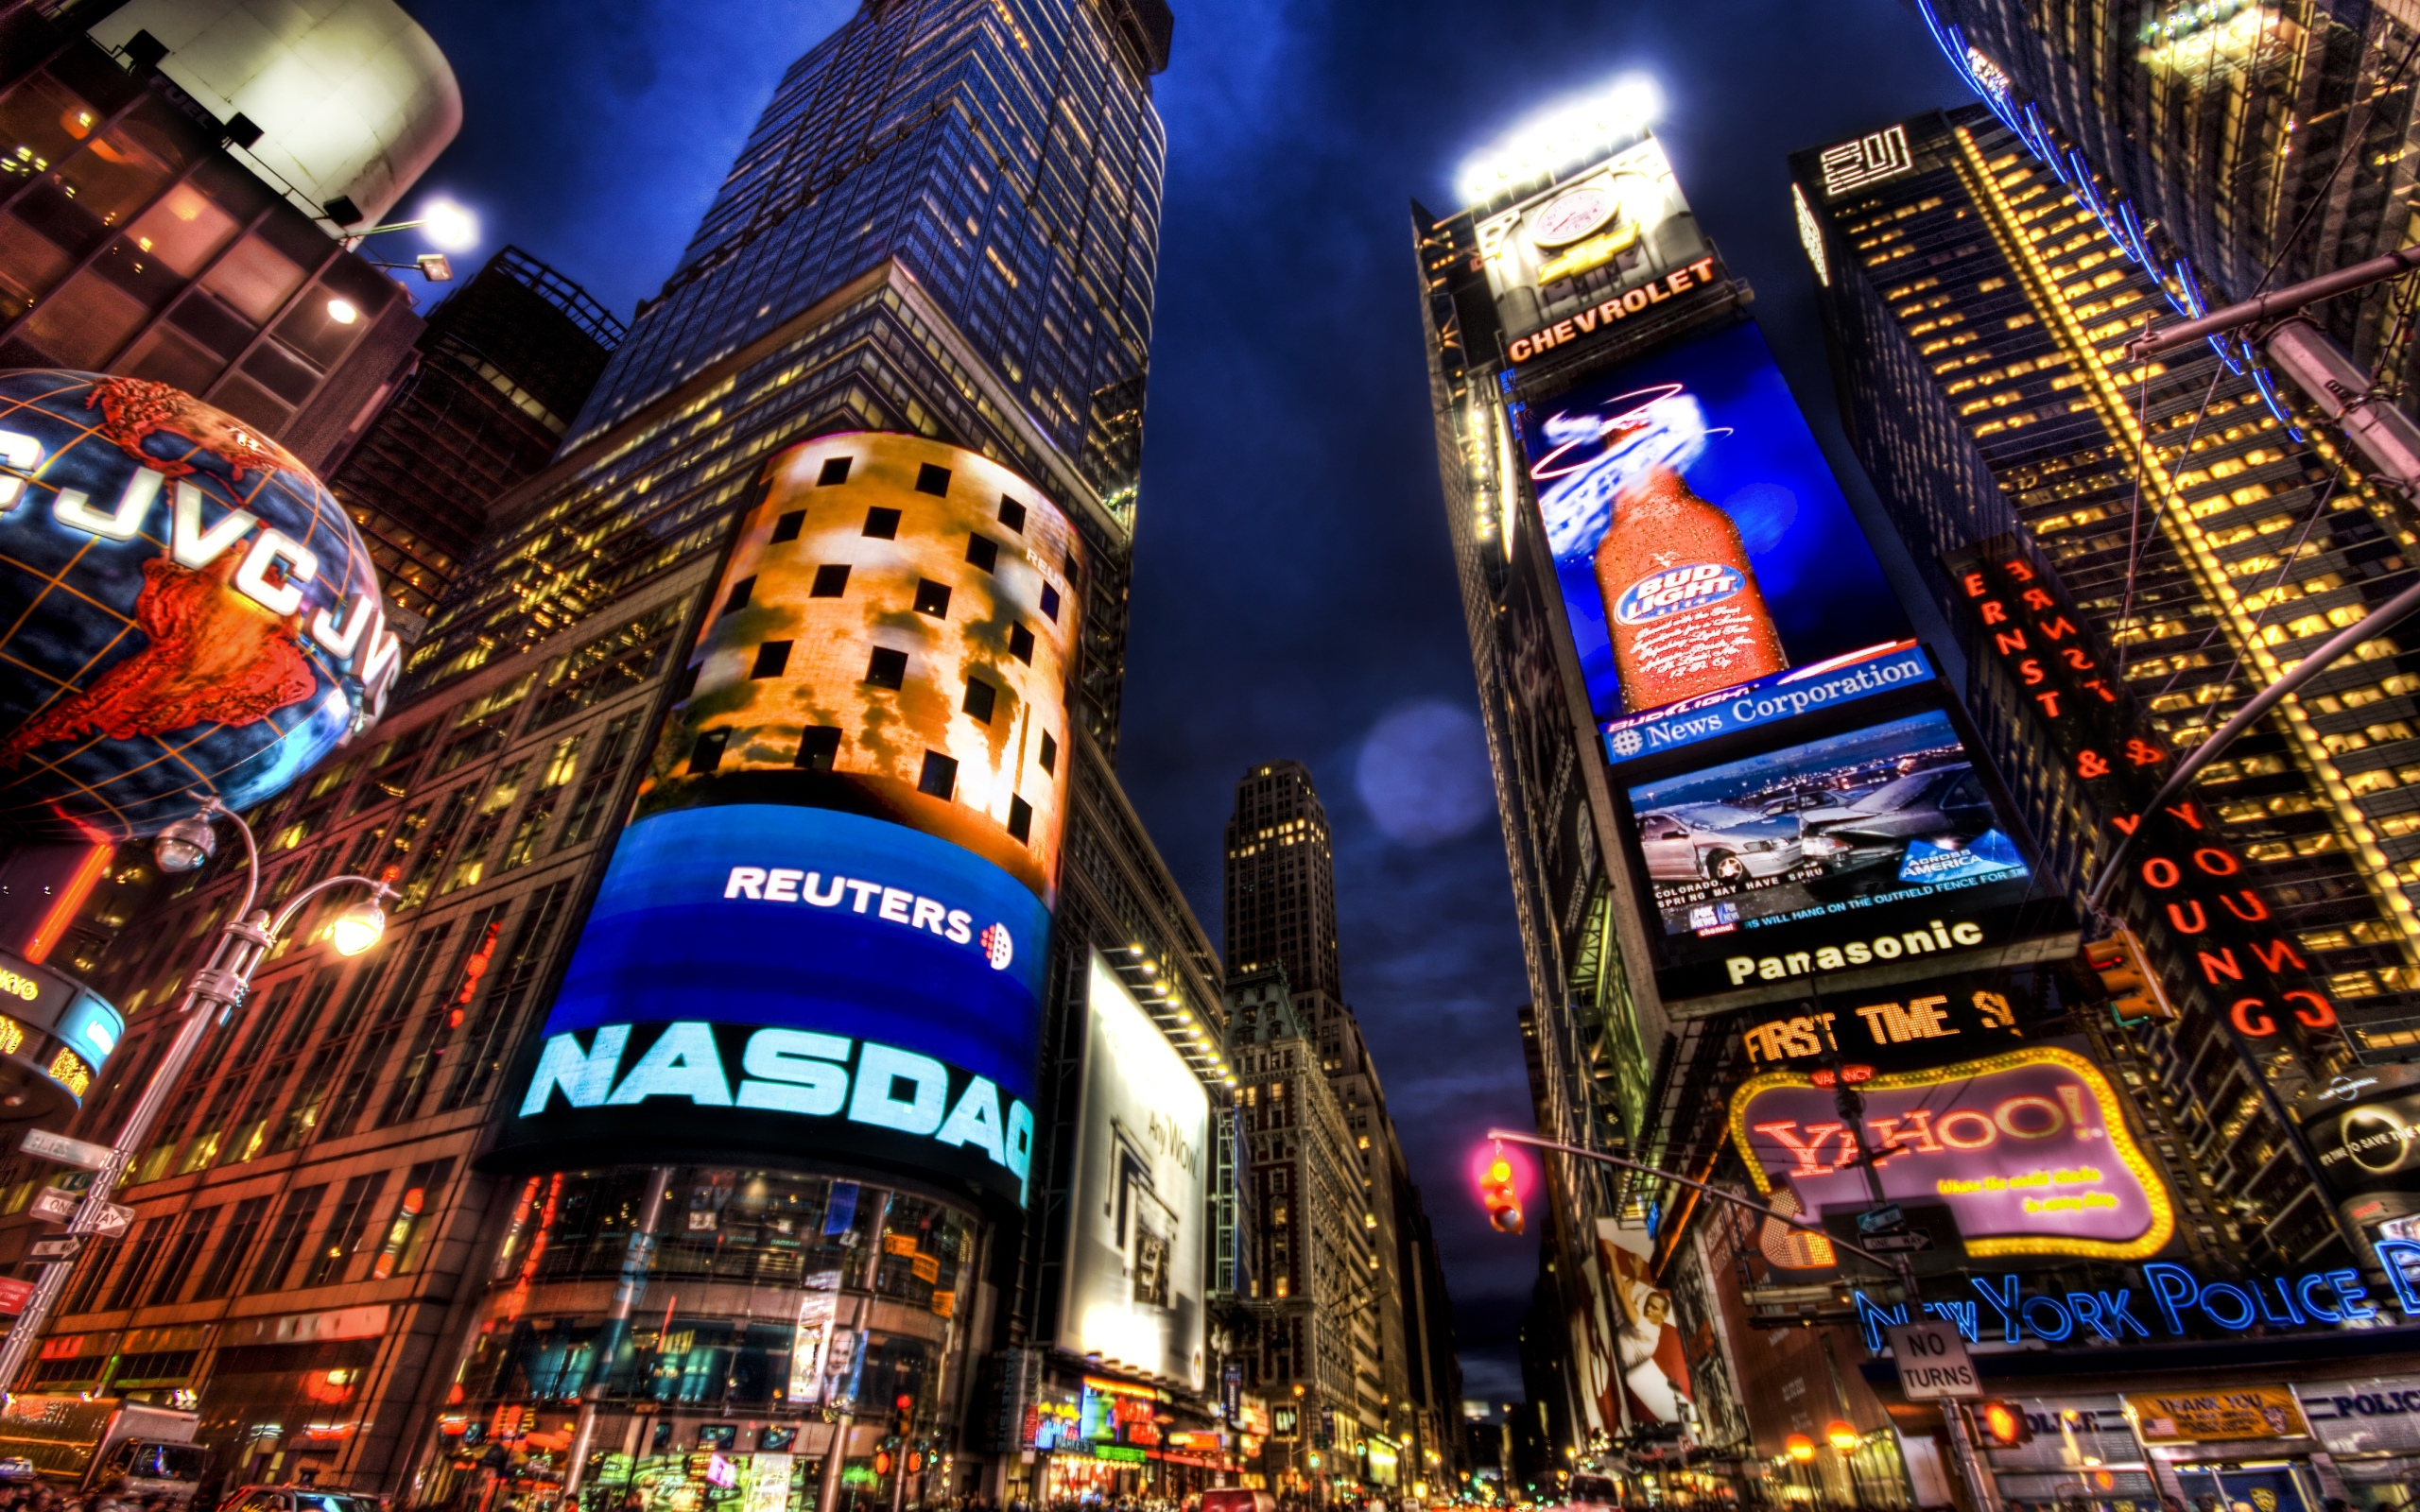 Times Square Iphone 6 Wallpaper New York City Times Square Wallpaper Nosso Assunto